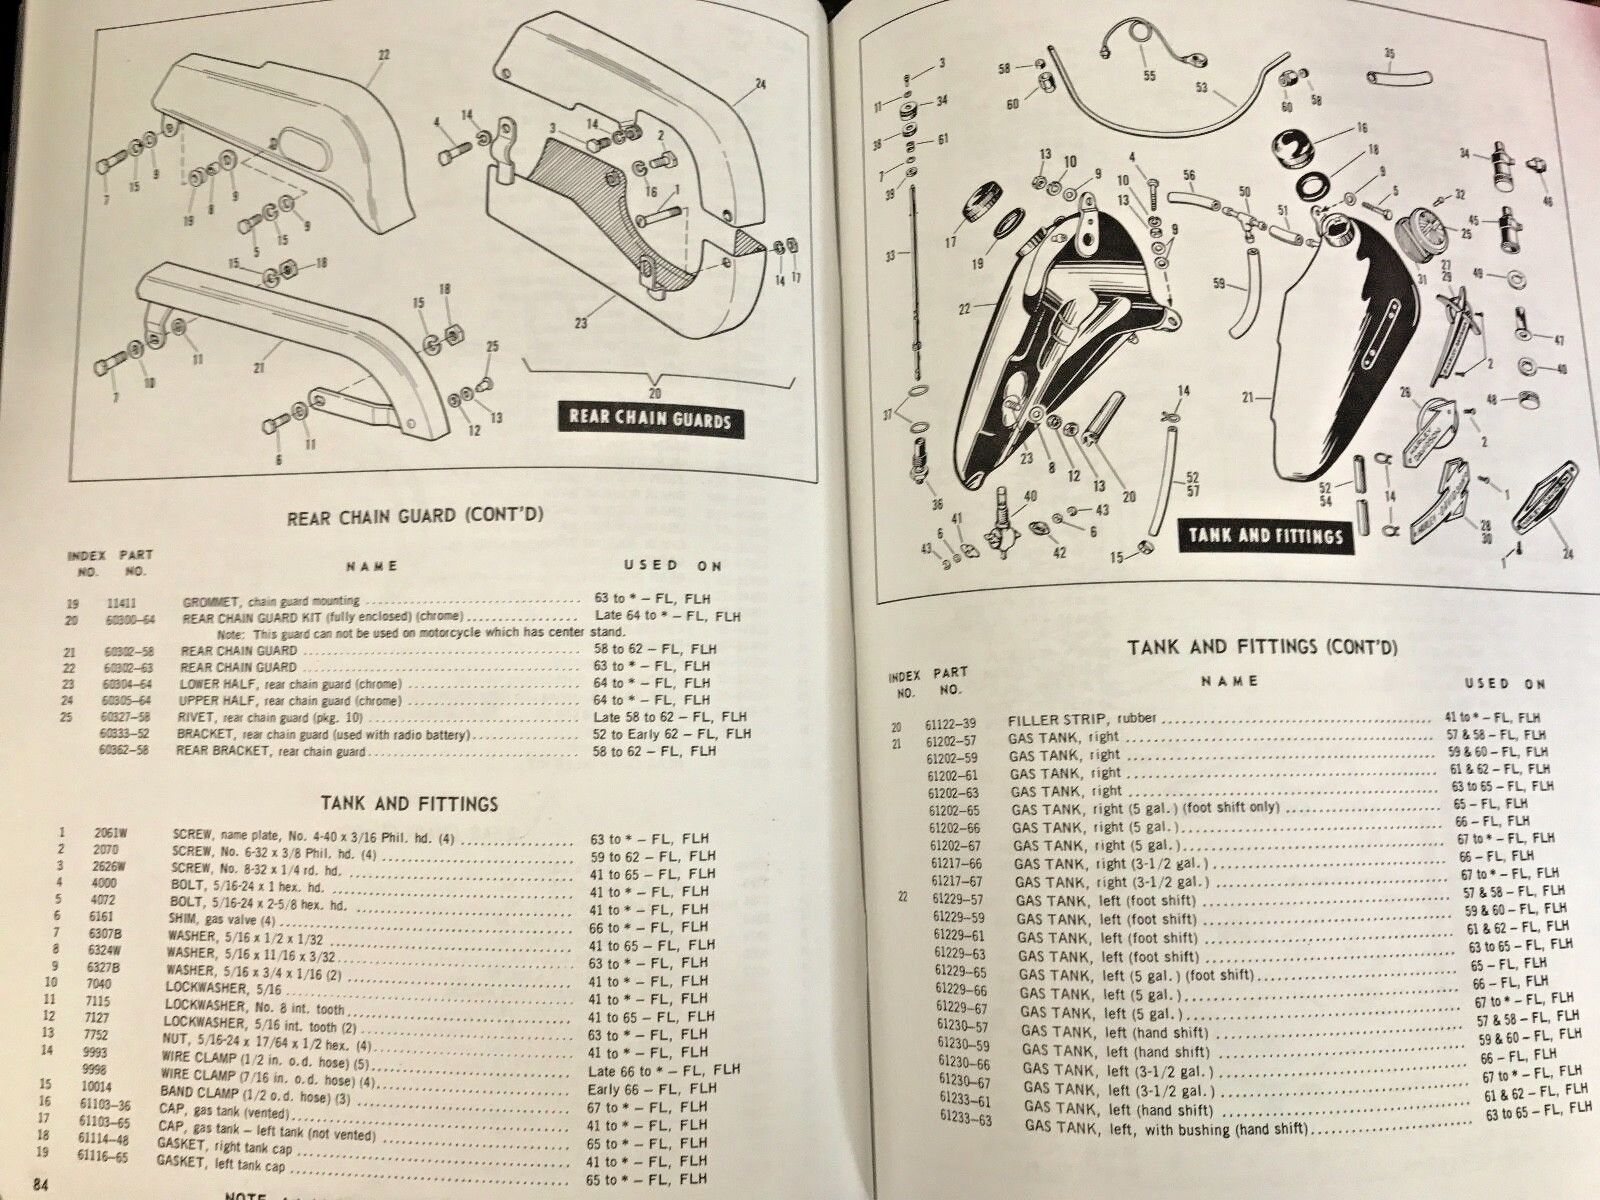 352199386875_2 Panhead Magneto Wiring Diagram on shovelhead diagram, panhead frame, panhead wiring made easy, panhead oil diagram, harley ignition switch diagram, panhead turn signals, simple turn signal diagram, panhead motor, panhead engine diagram, panhead relay diagram, panhead exhaust, panhead voltage regulator wiring, sportster transmission diagram, panhead transmission, panhead distributor, panhead starter, panhead oil filter, panhead clutch diagram, panhead engine drawings,